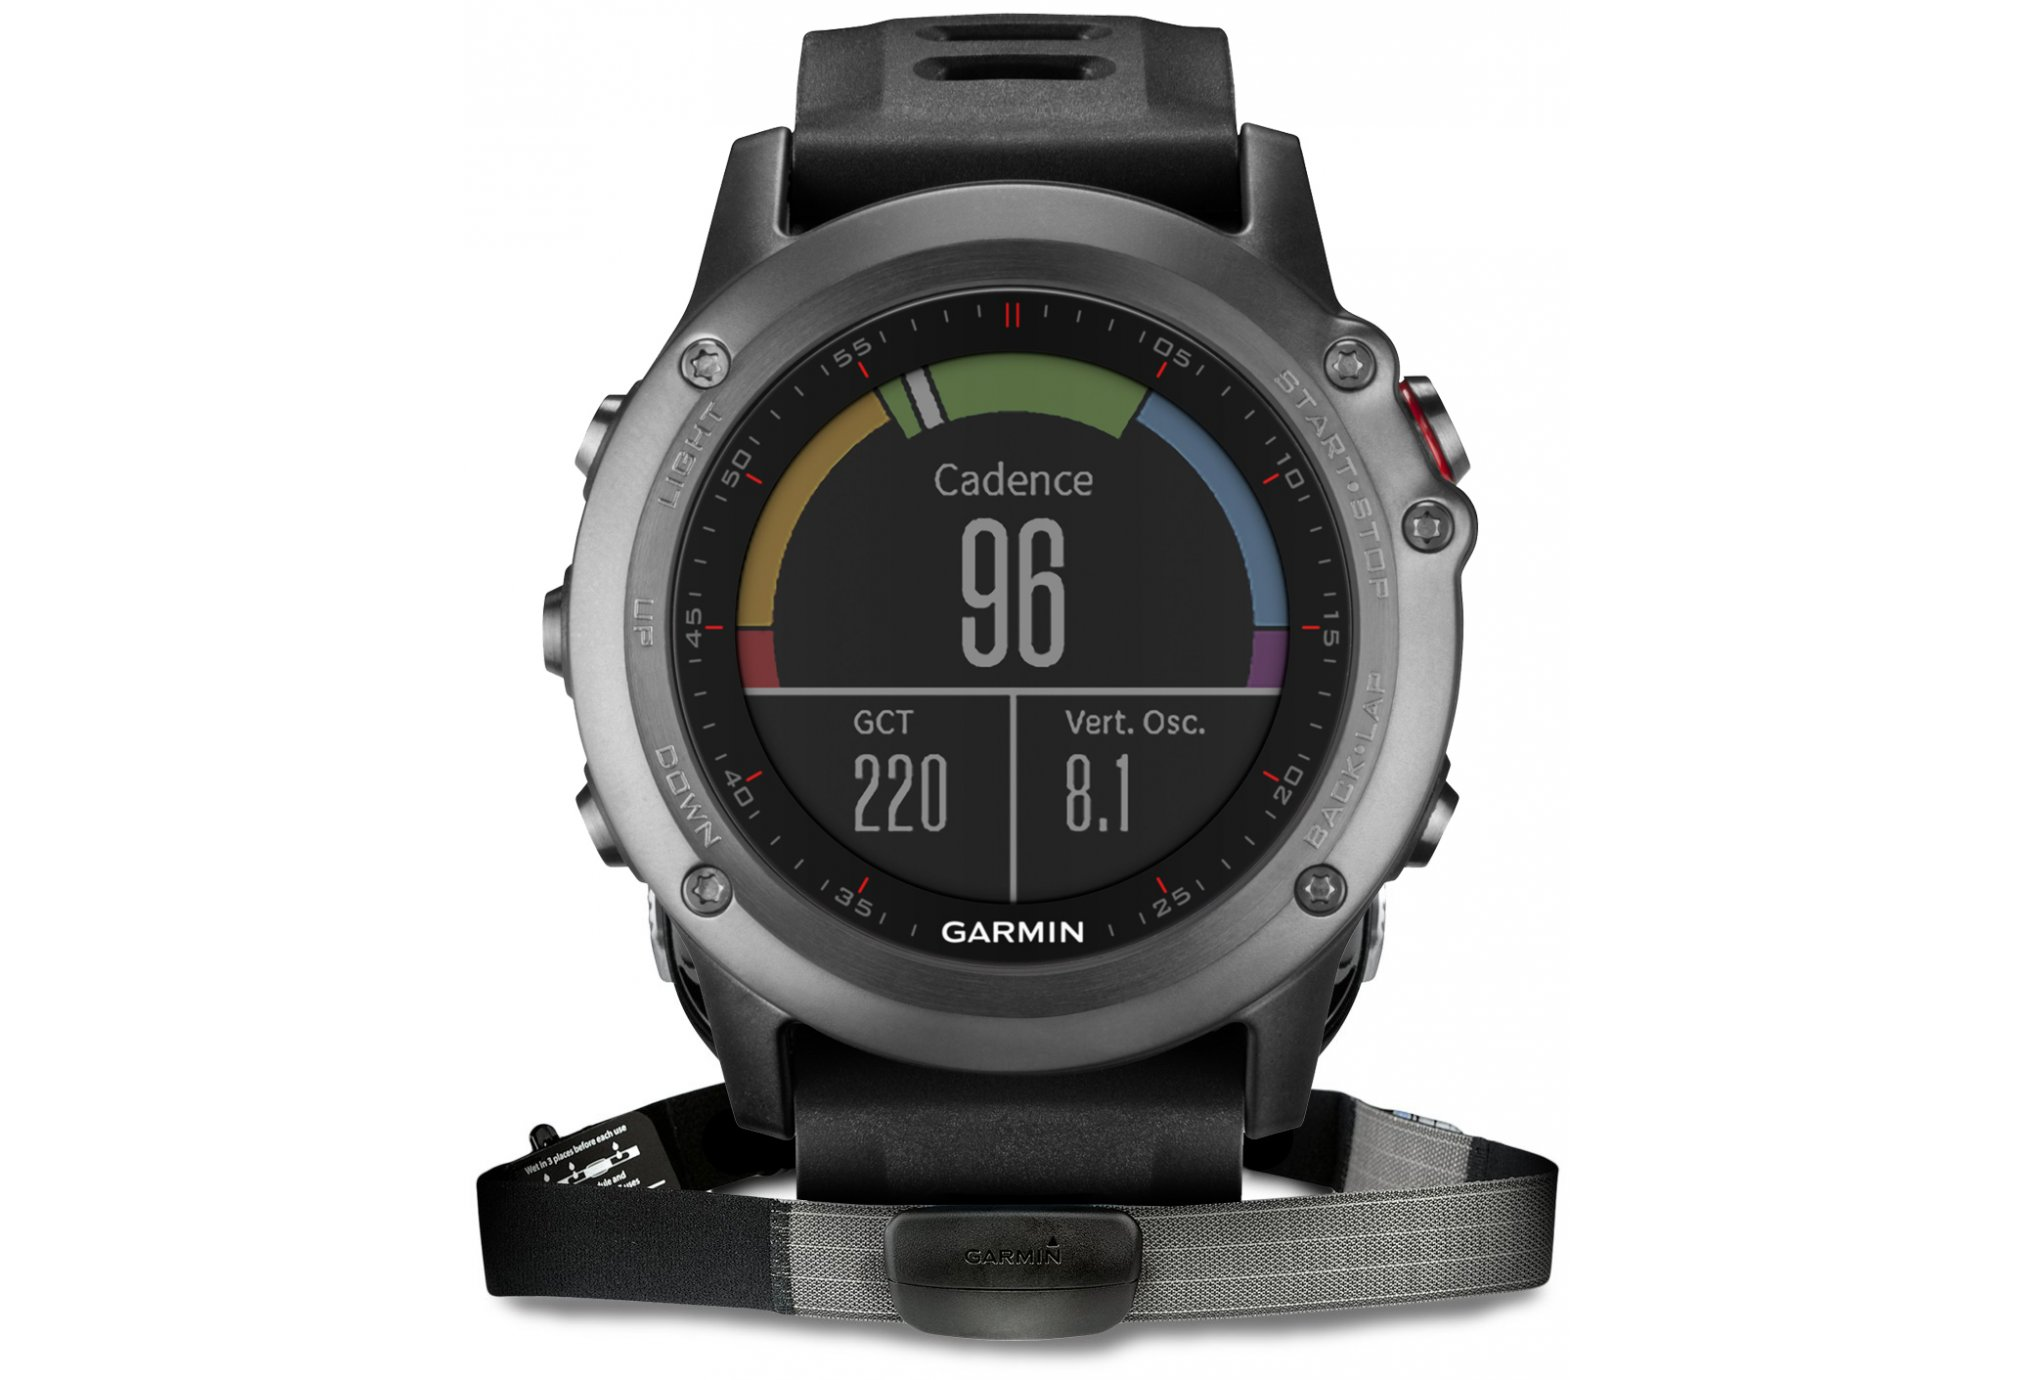 garmin-pack-fenix-3-hrm3-electronique-167423-1-fz